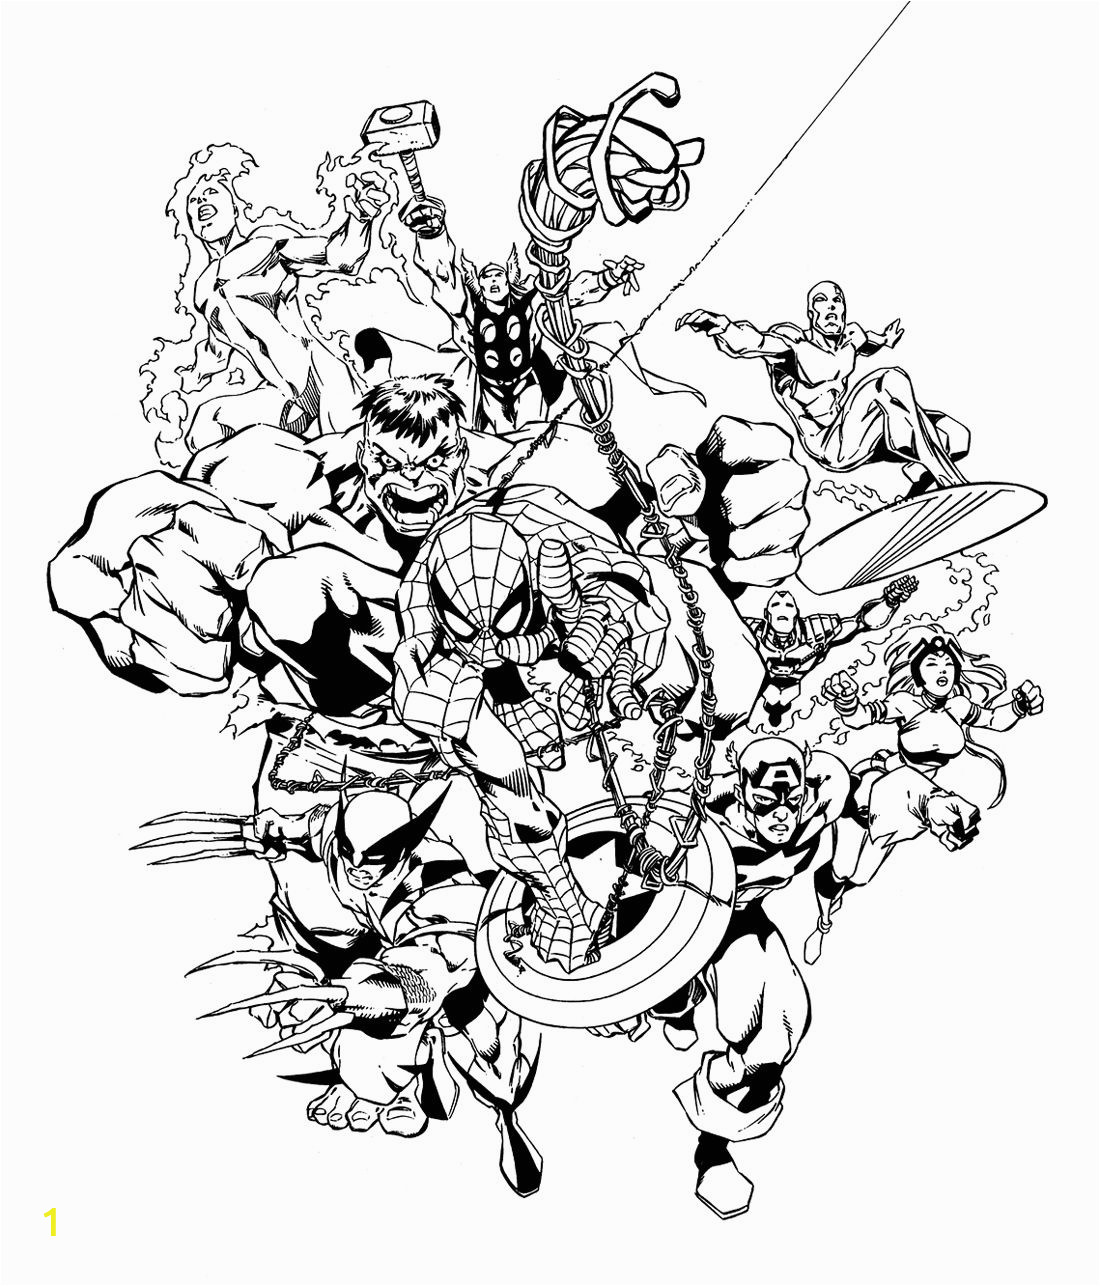 Free Printable Marvel Superhero Coloring Pages Marvel Heroes by Carlos Pacheco